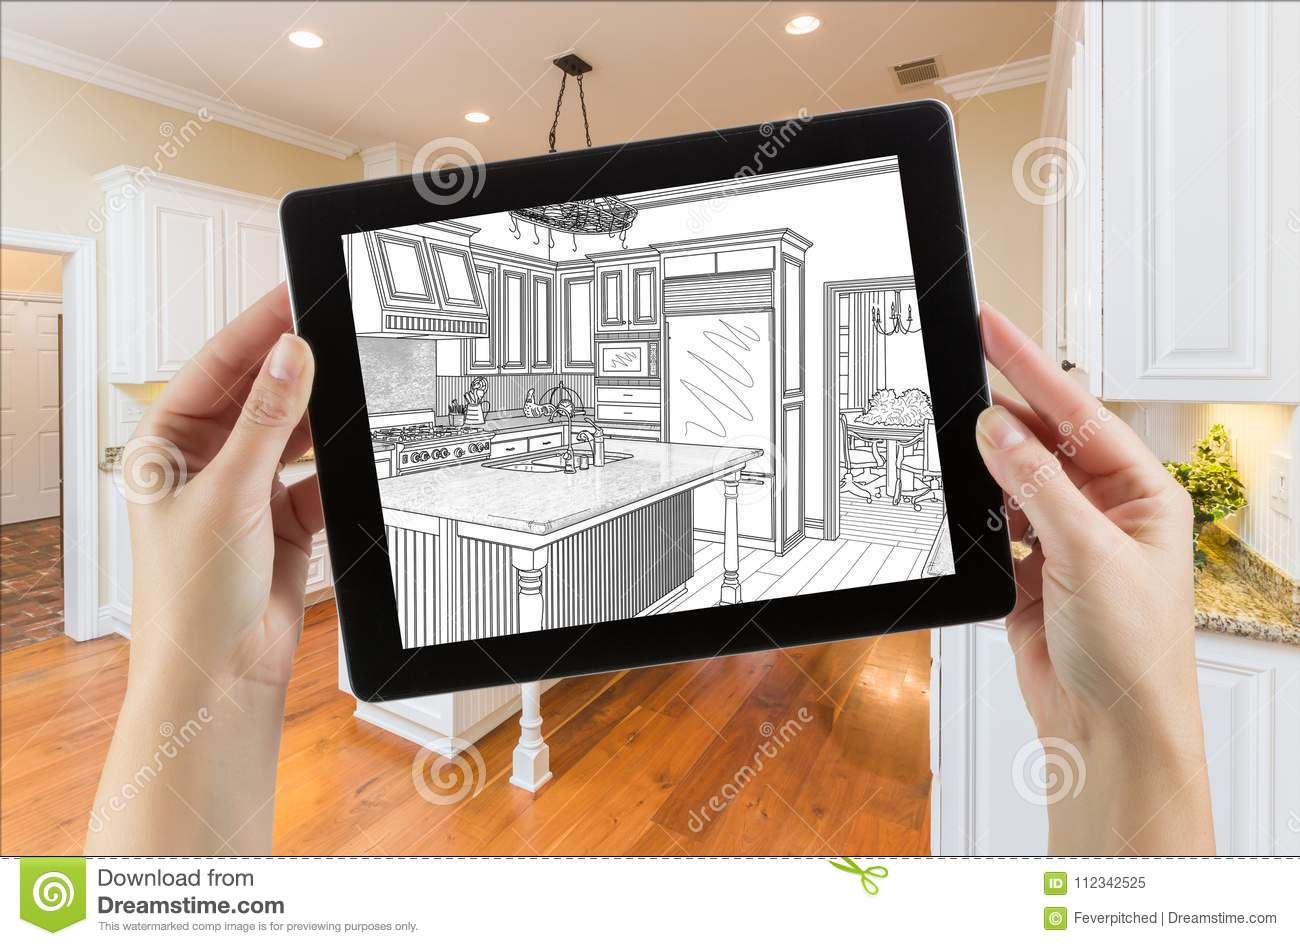 Female Hands Holding Computer Tablet with Drawing on Screen of Kitchen